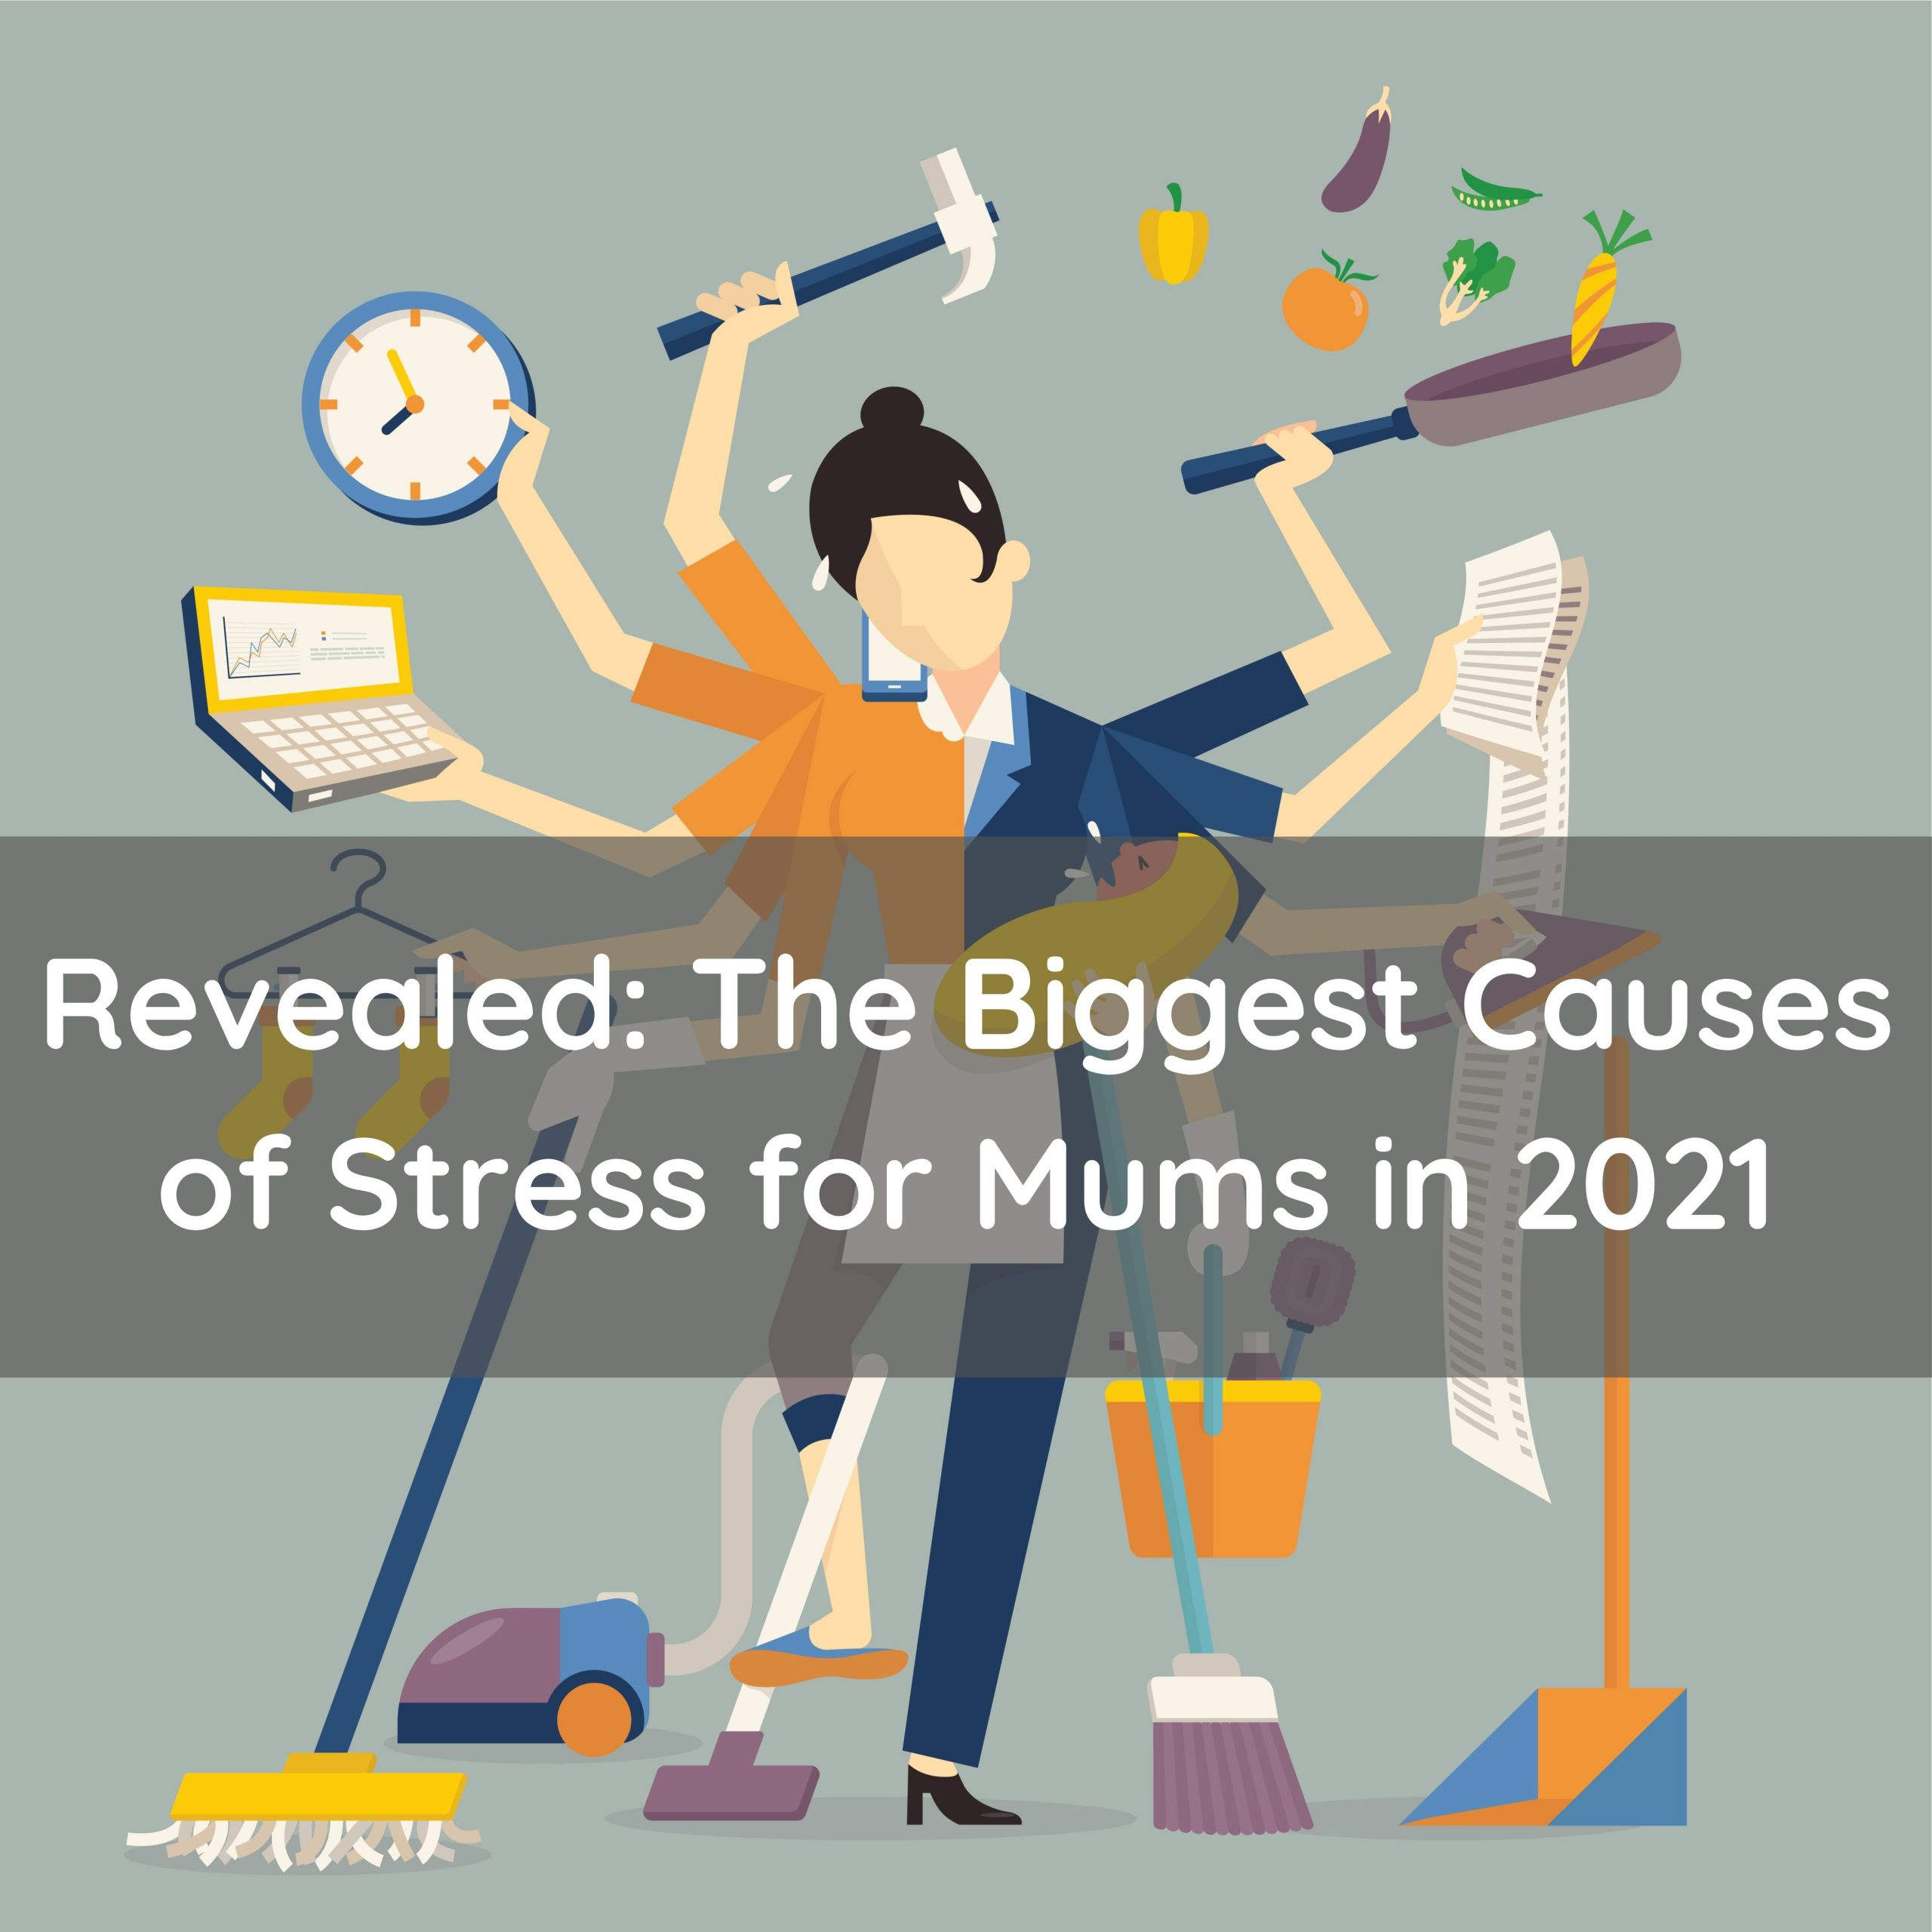 These things are causing mums the most stress this year, according to Mumsnet... 1